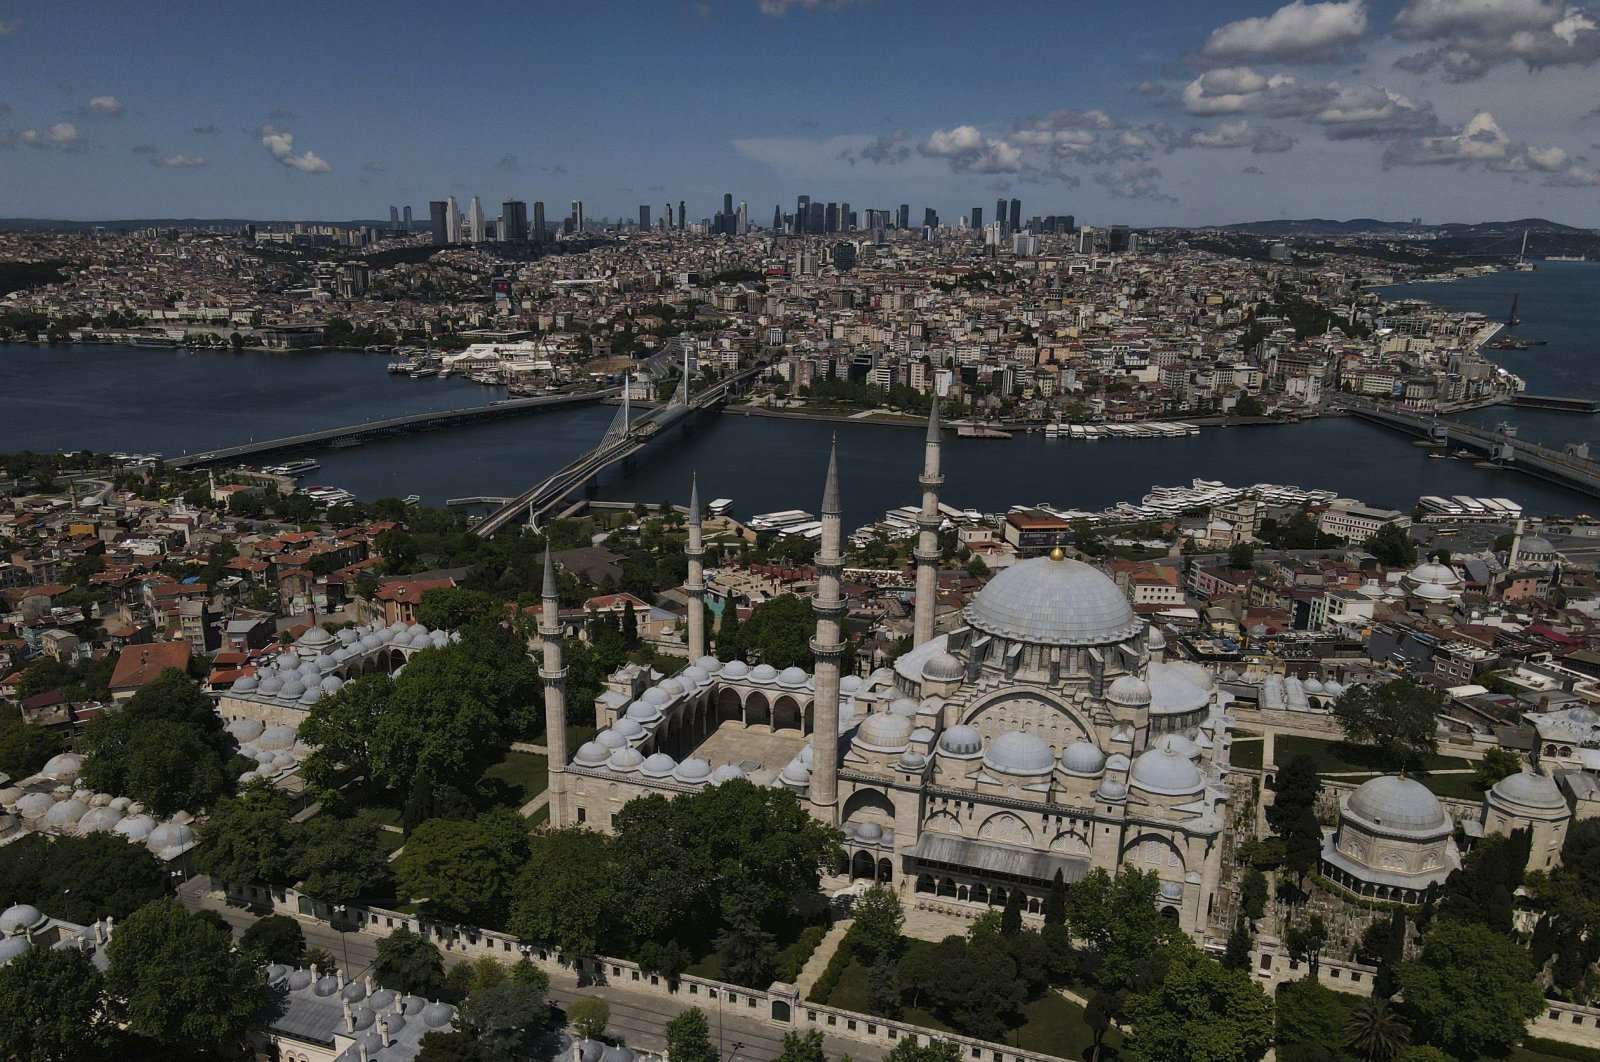 An aerial view of the historical district of Istanbul during the last day of a four-day curfew due to the coronavirus outbreak, Turkey, May 26, 2020. (AP Photo)